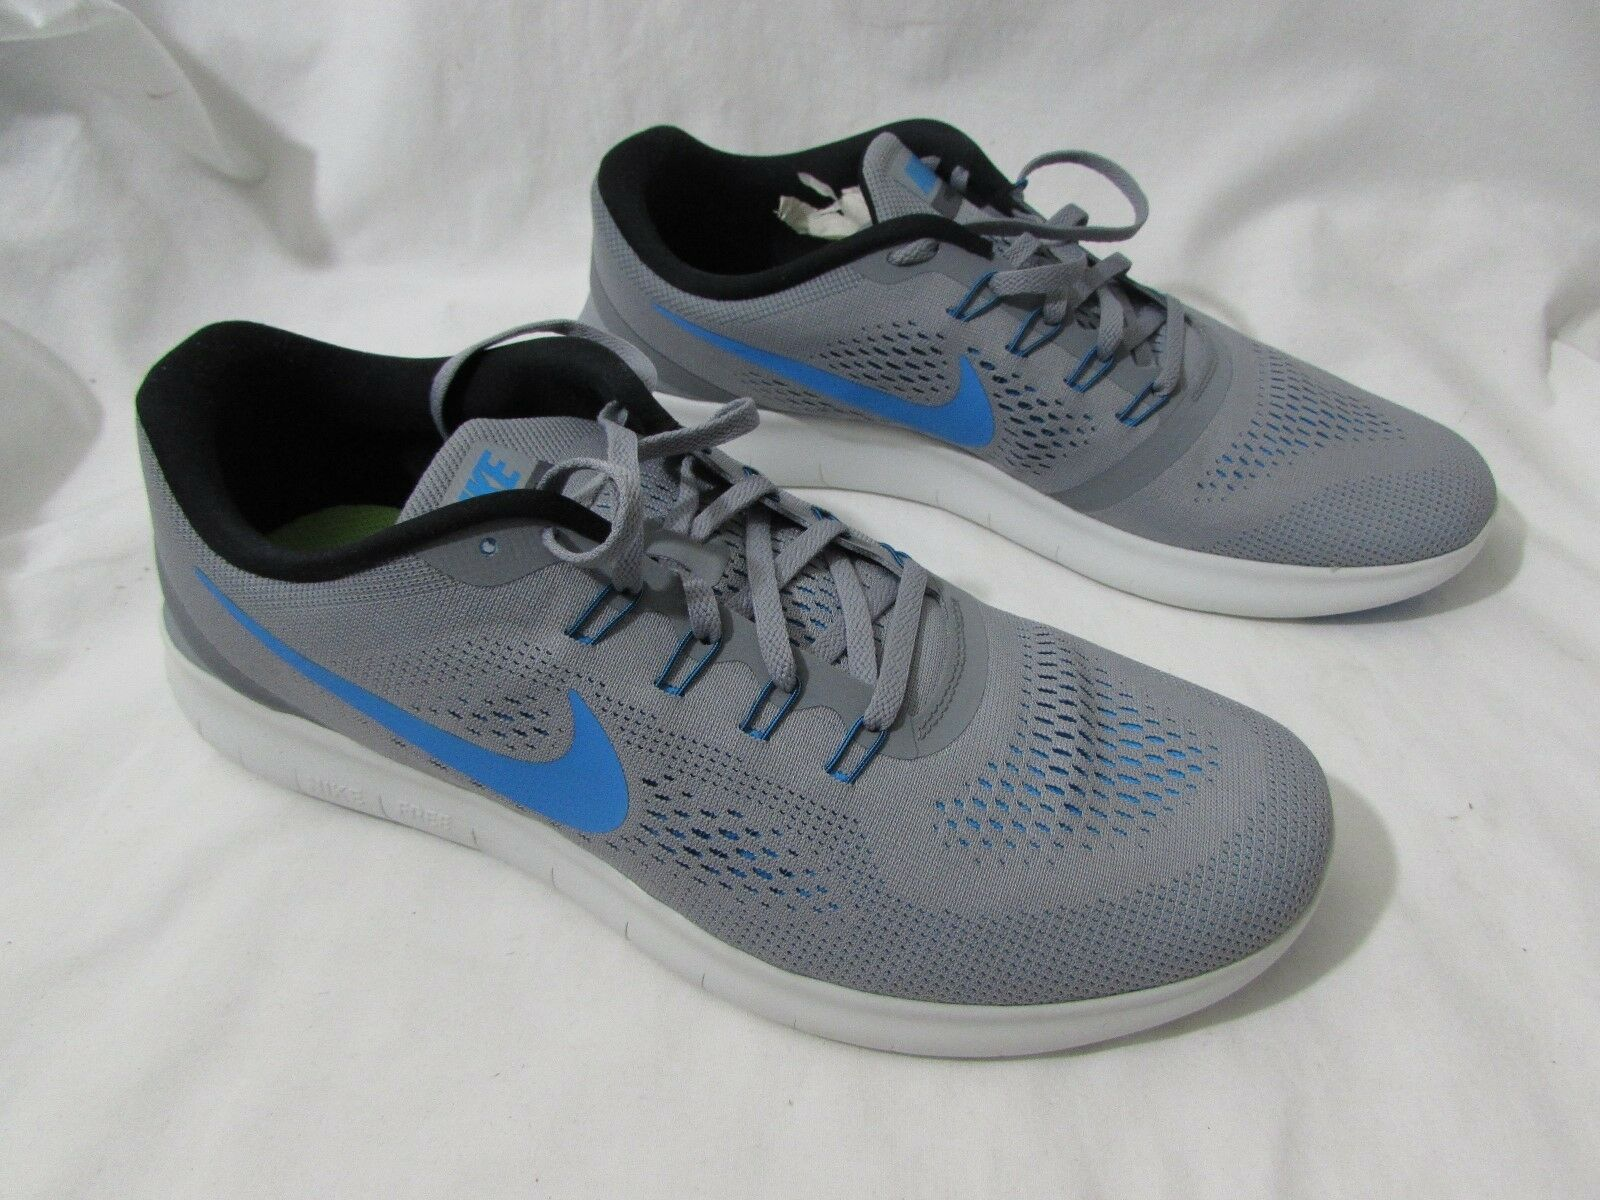 Nike Free Rn Stealth   bluee Men's Running shoes Athletic Sneakers  Size 13 US